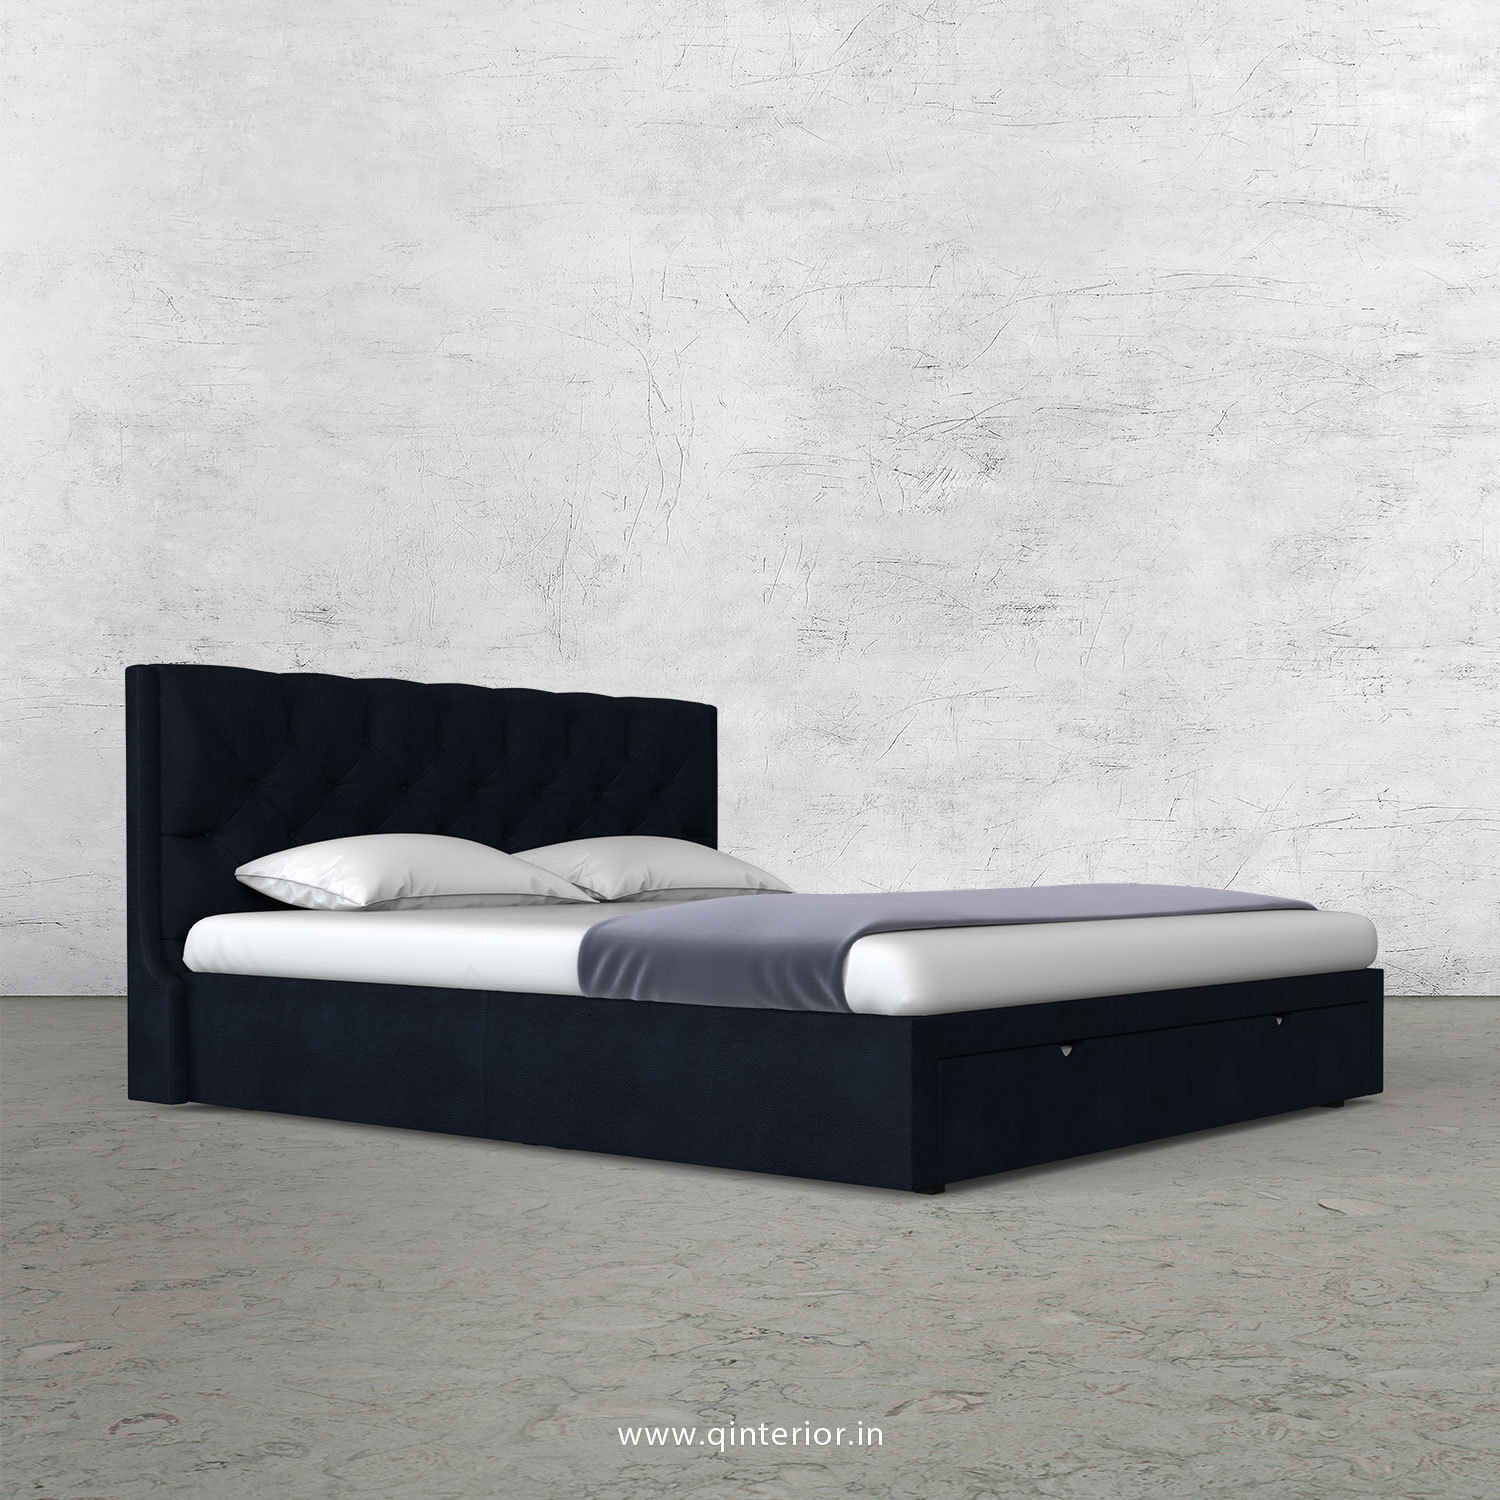 Scorpius King Size Storage Bed in Fab Leather Fabric - KBD001 FL05